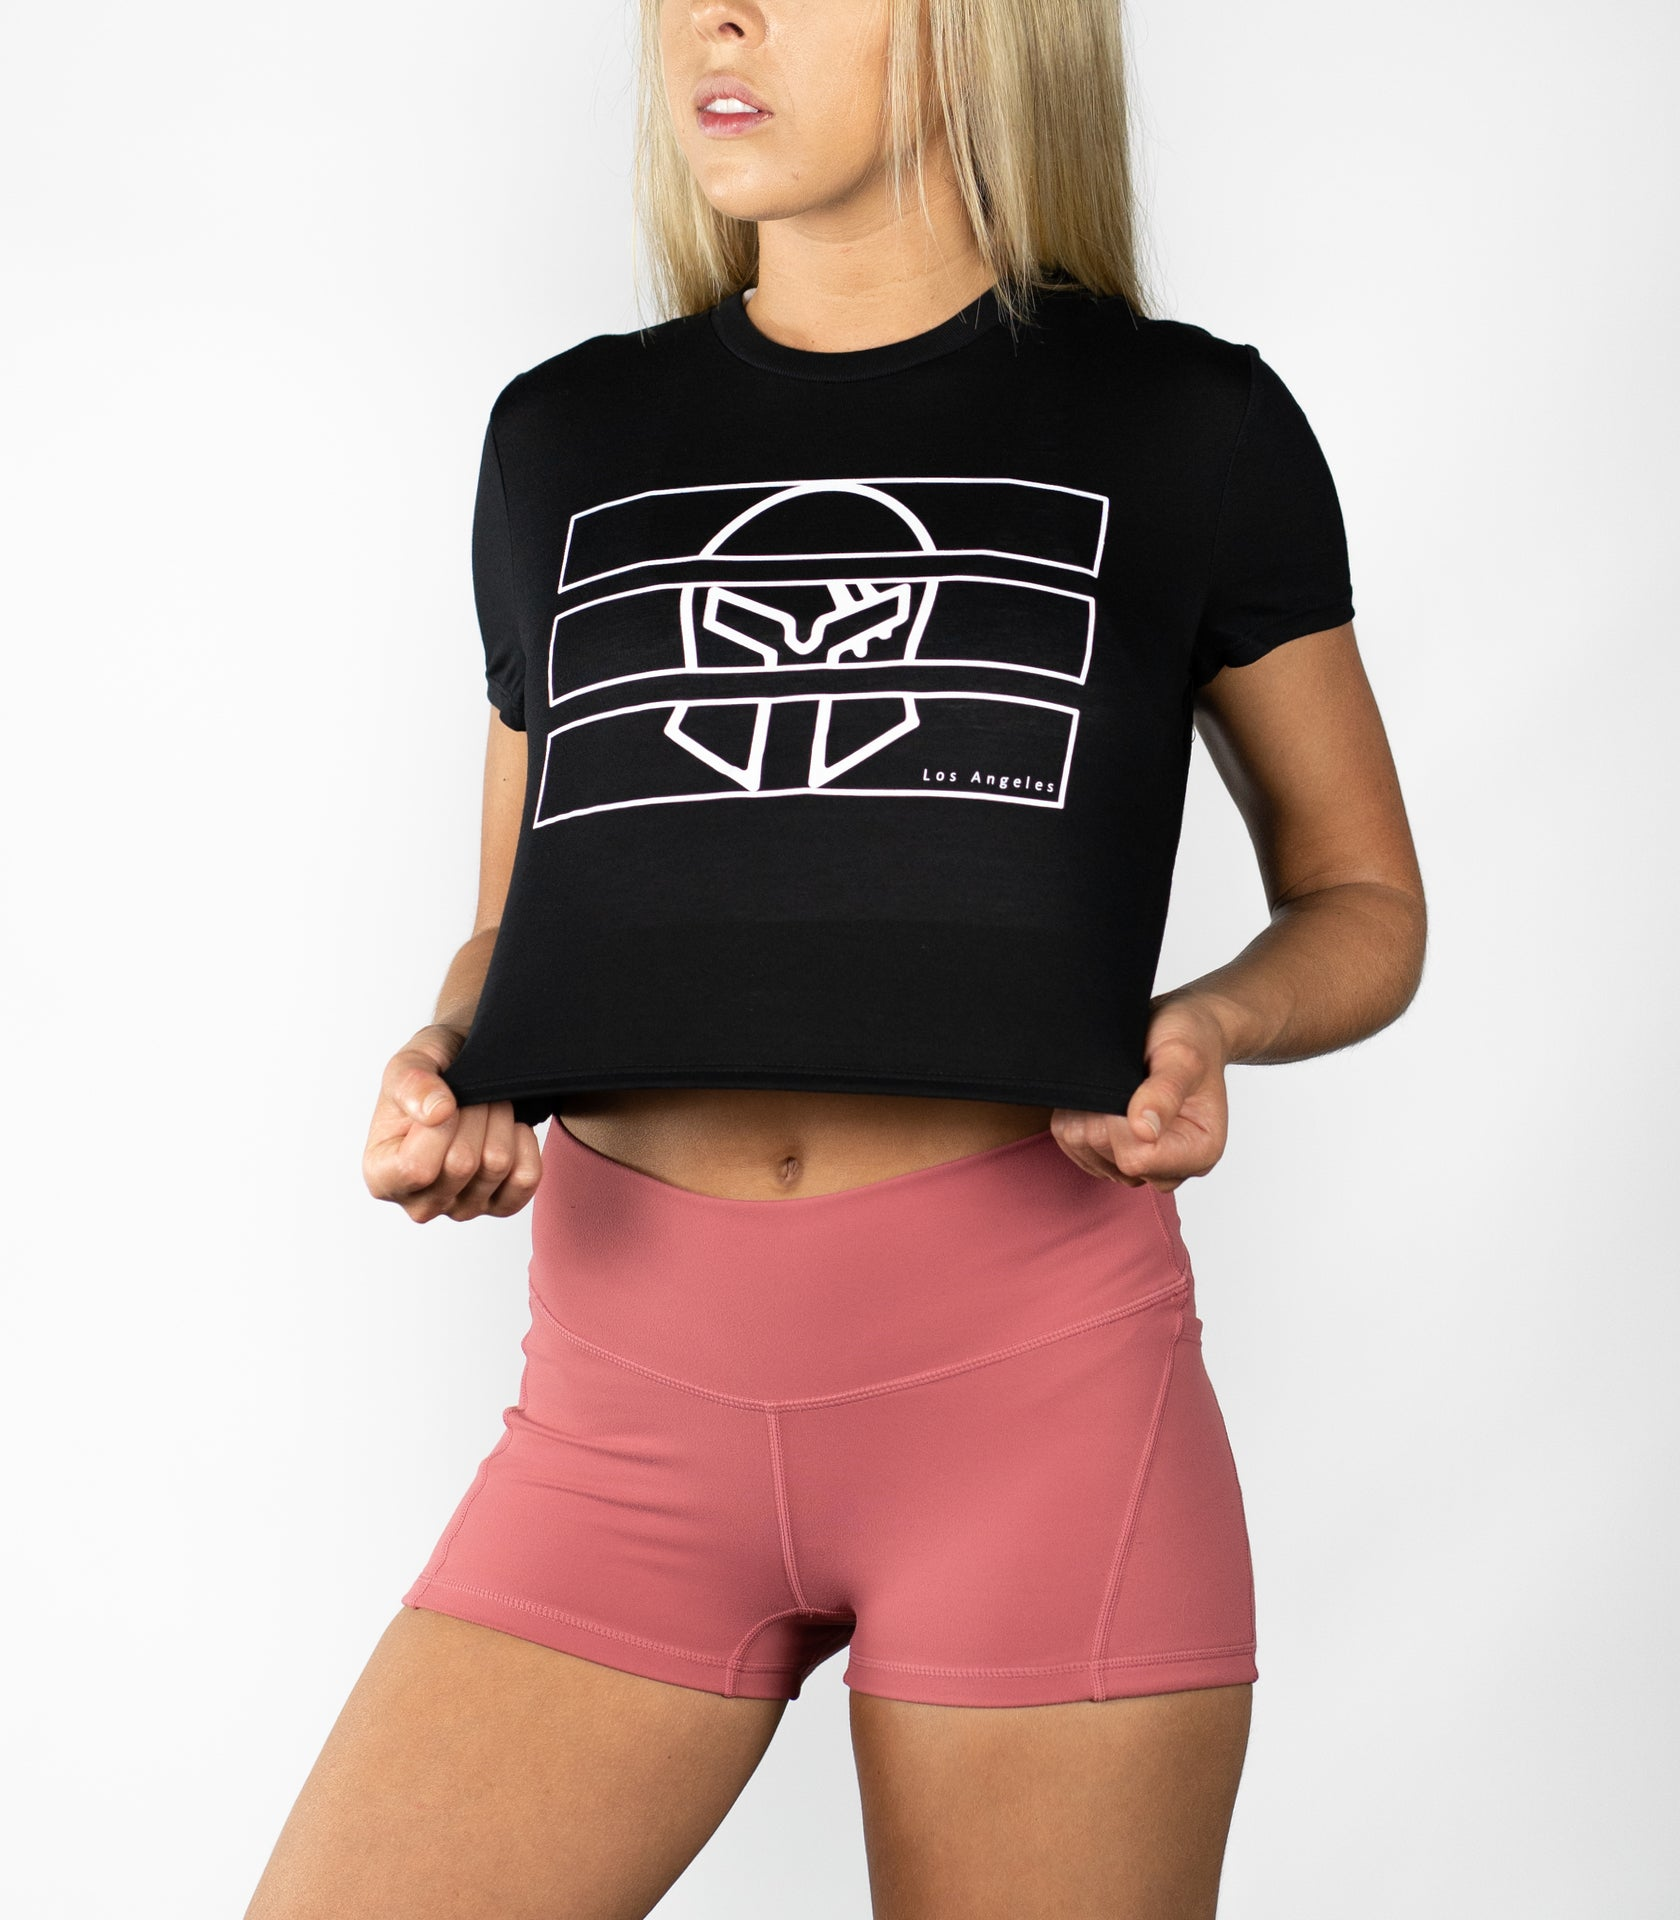 Behind Bars Crop Tee